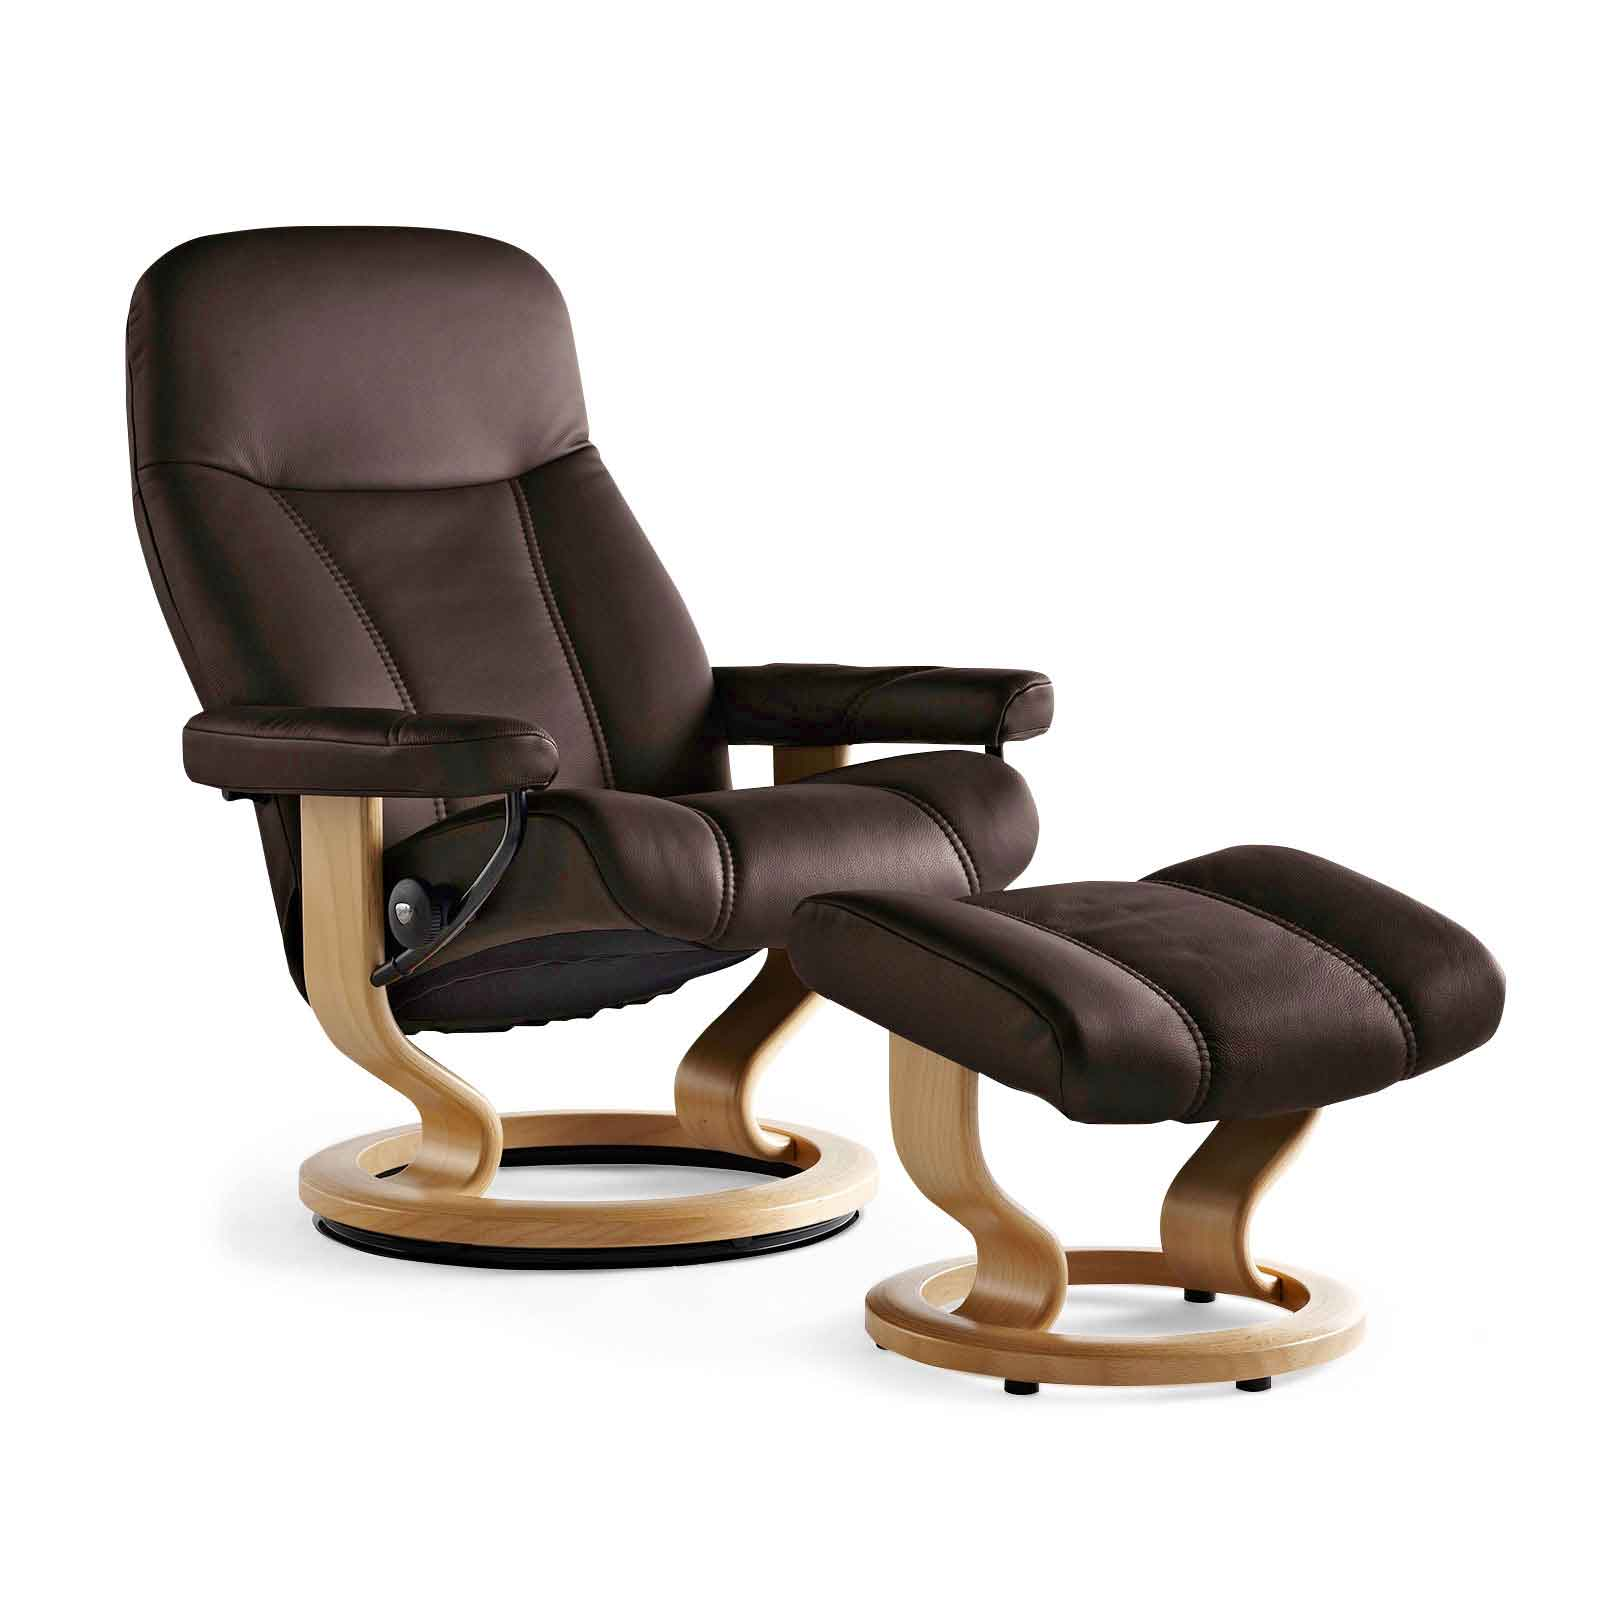 Stressless Aktion Stressless Sessel Consul Braun | Fernsehsessel Deluxe